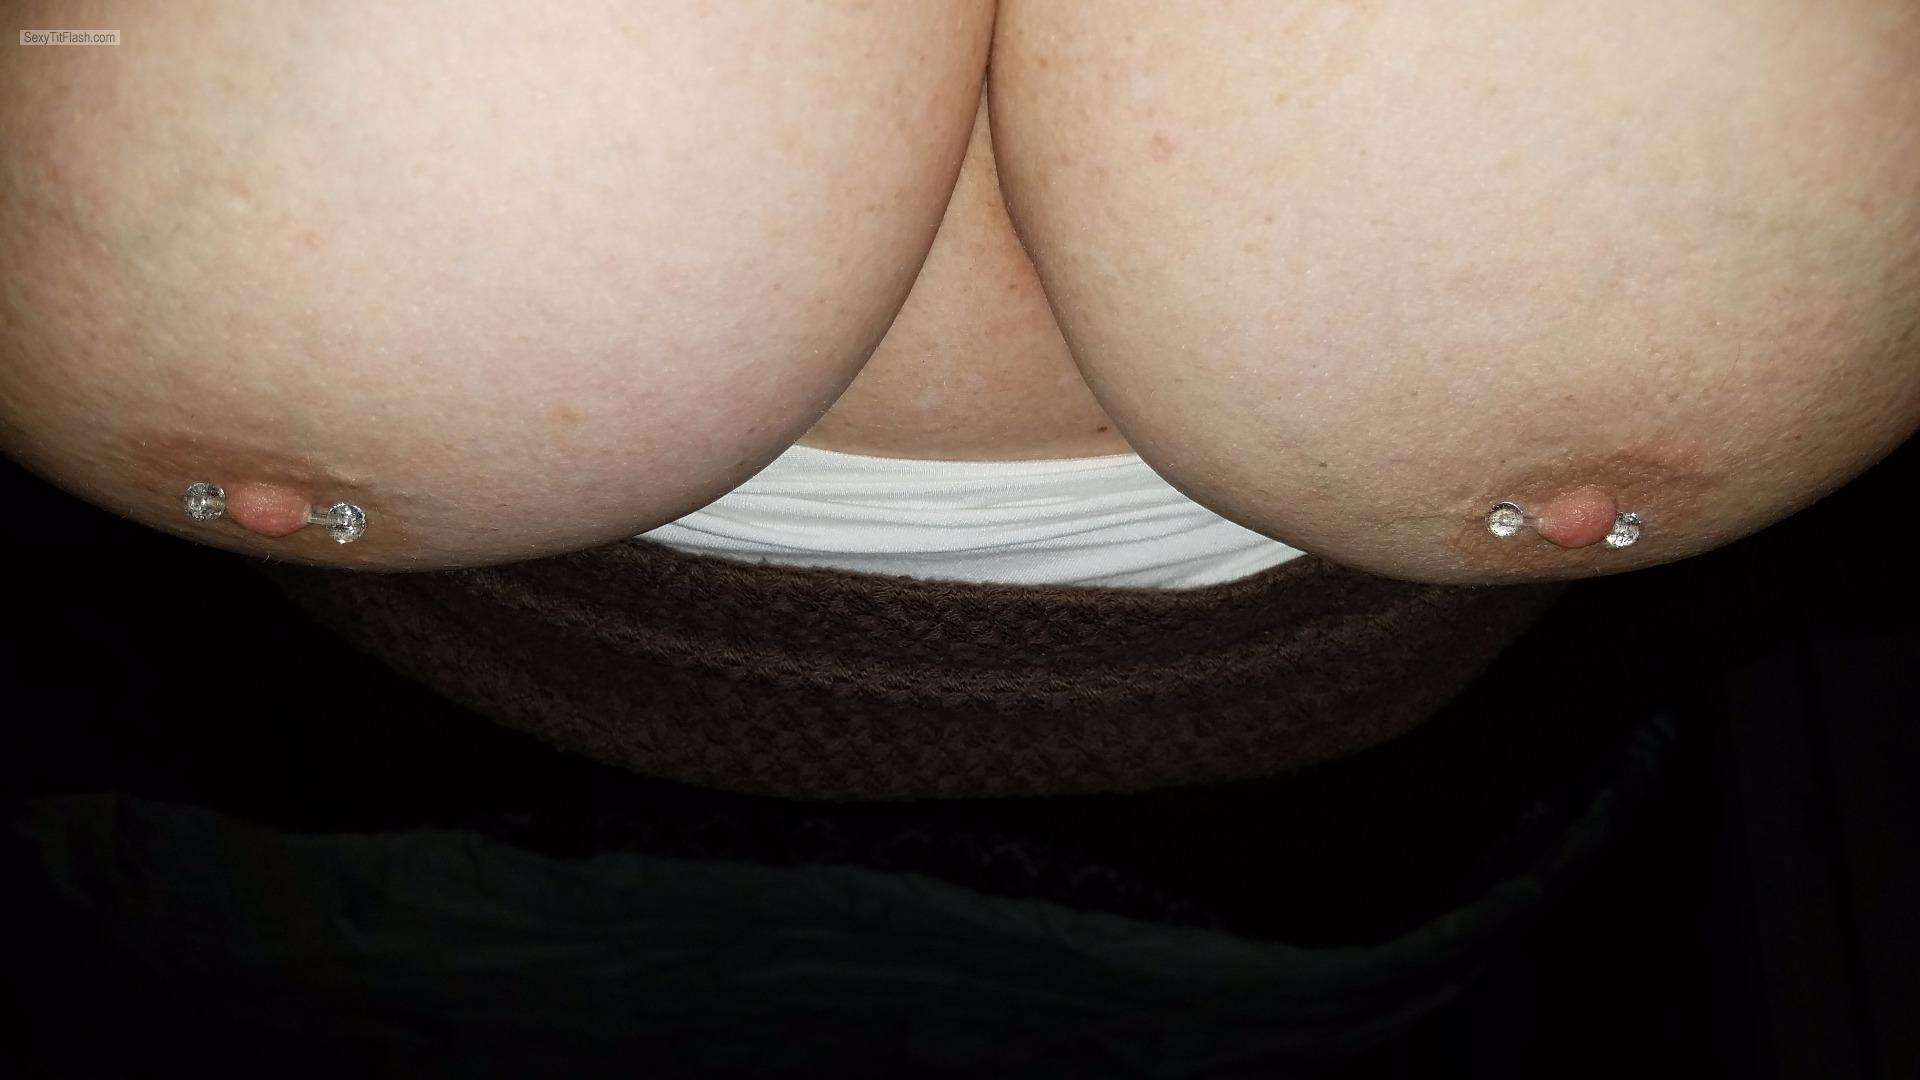 My Very big Tits Selfie by Northern Nips